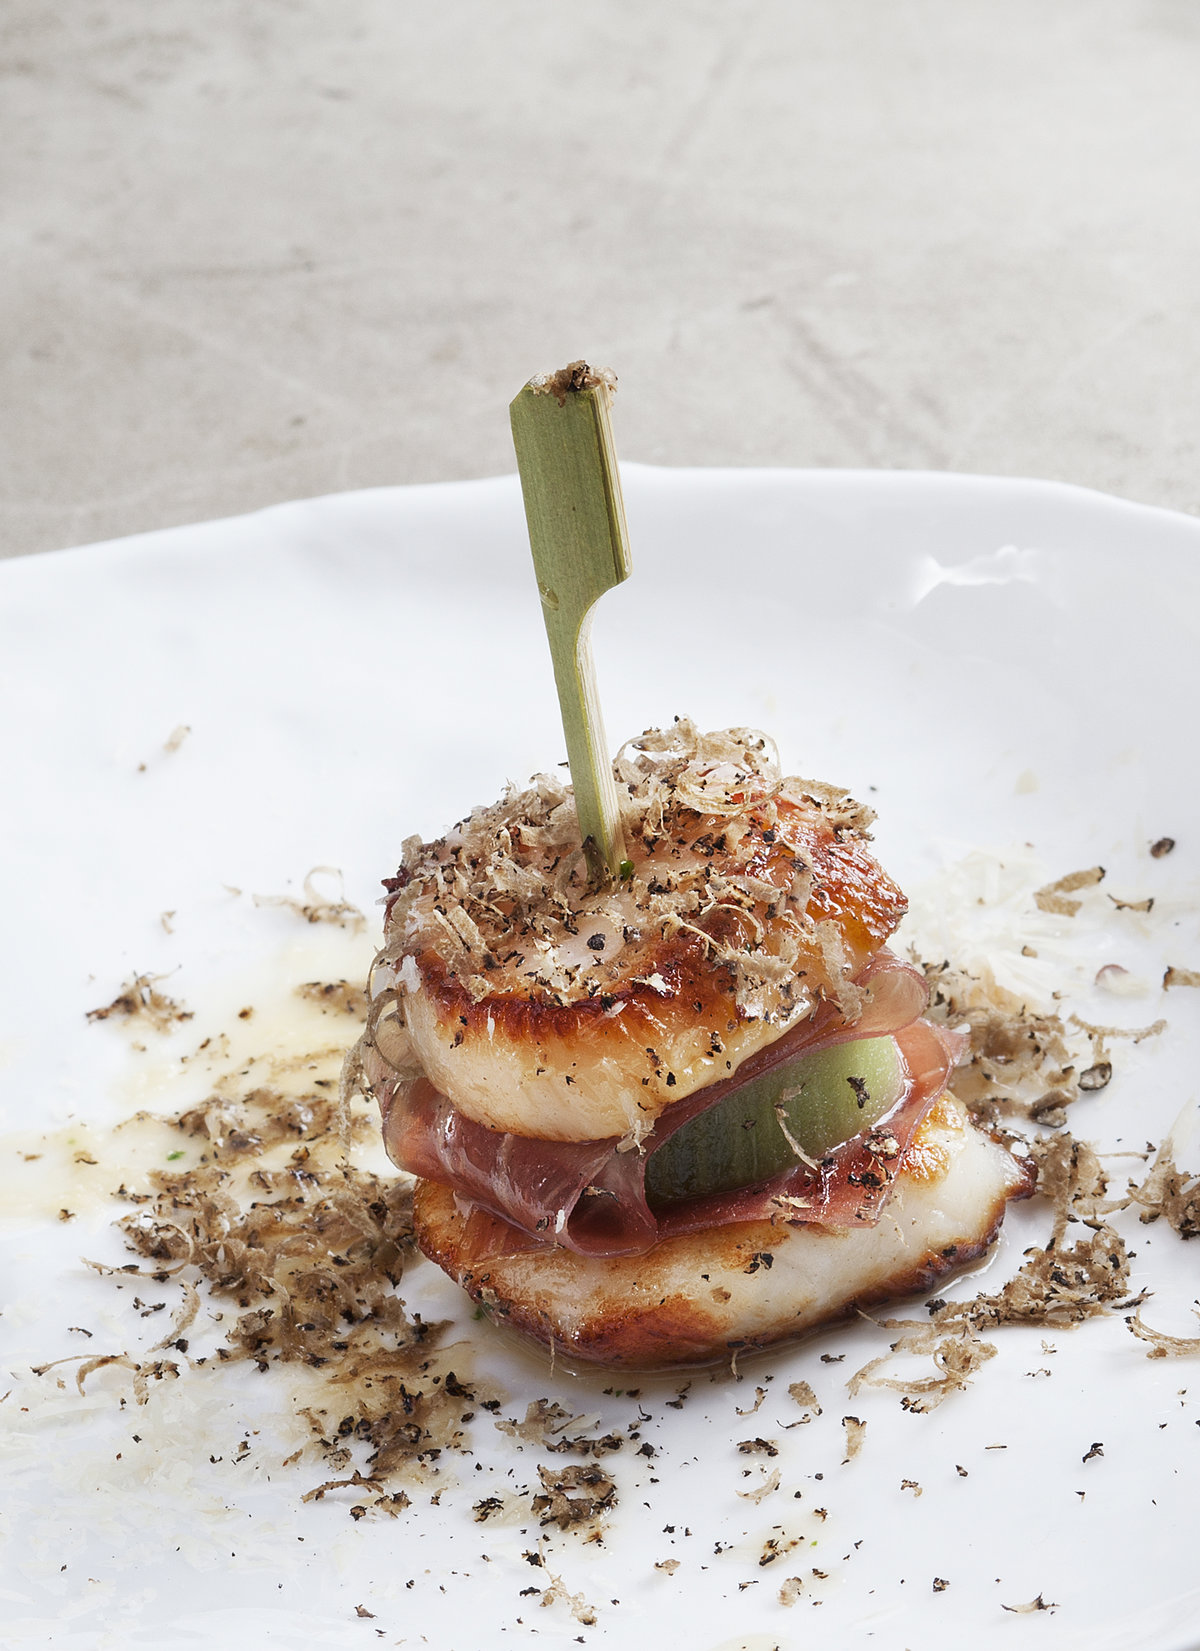 Scallop and kiwi burger | Courtesy of Ben Spalding